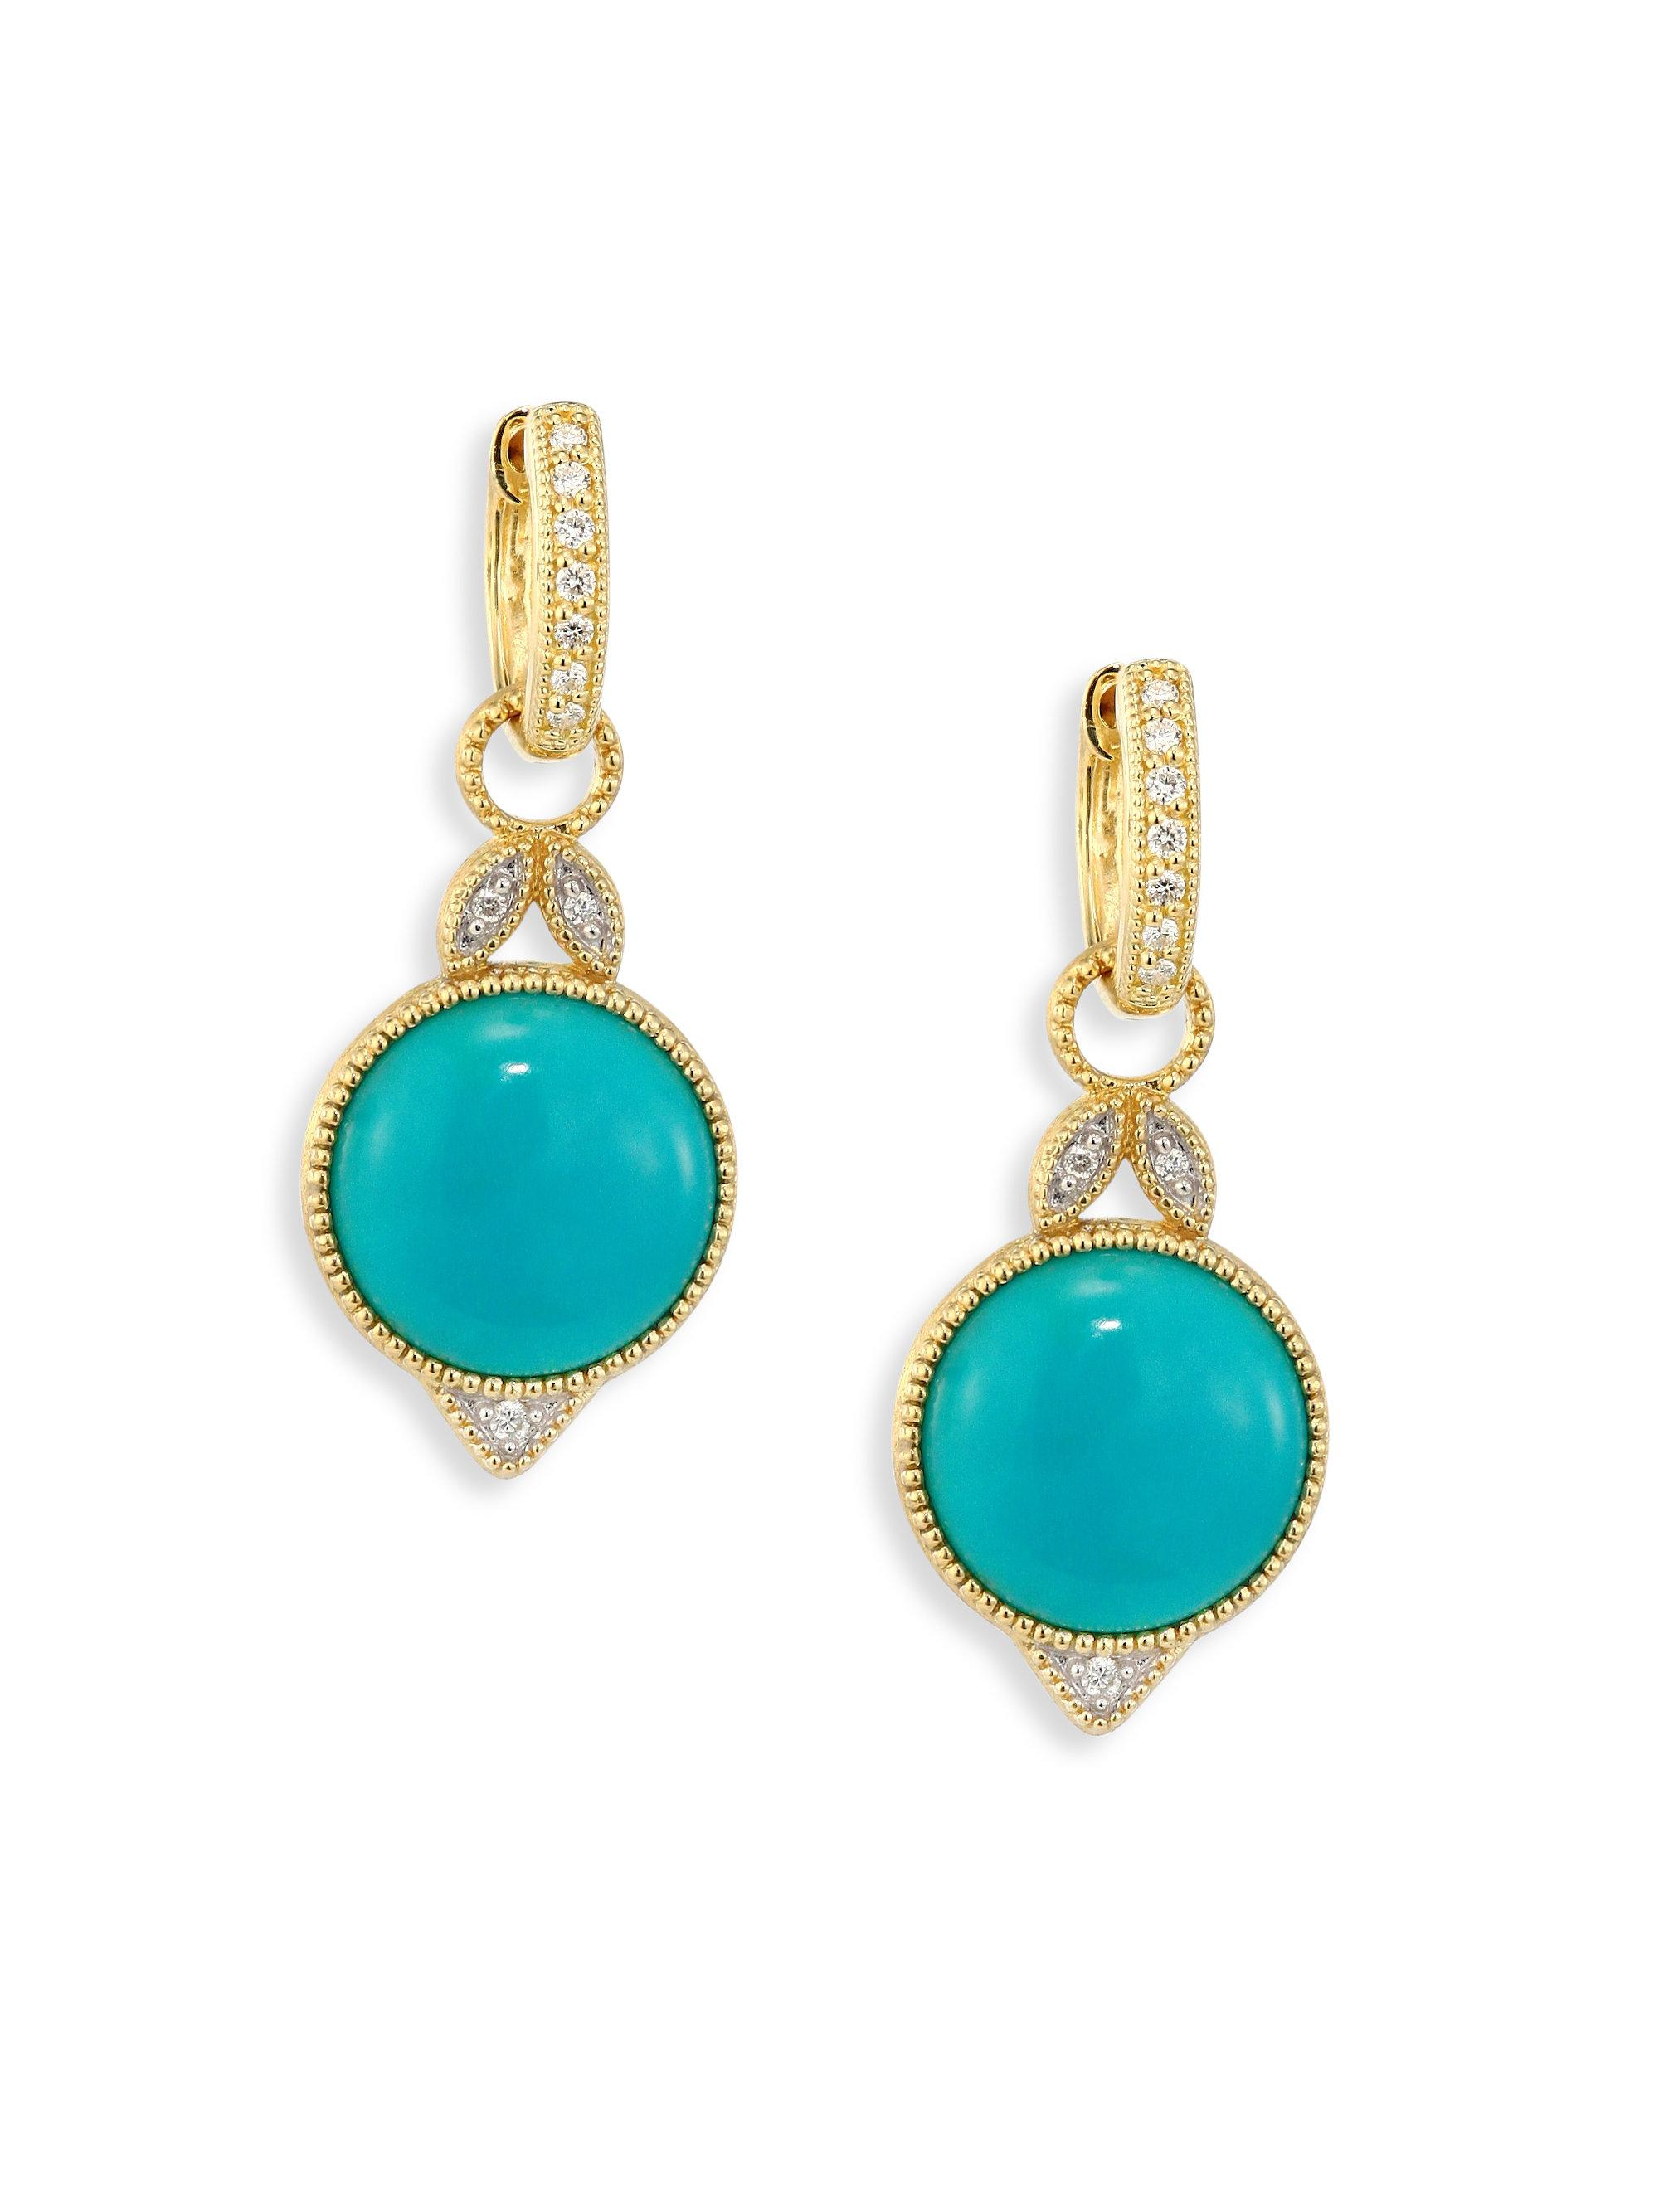 Jude Frances Moroccan 18k White Gold Turquoise/Diamond Drop Earrings r8w9Nyu